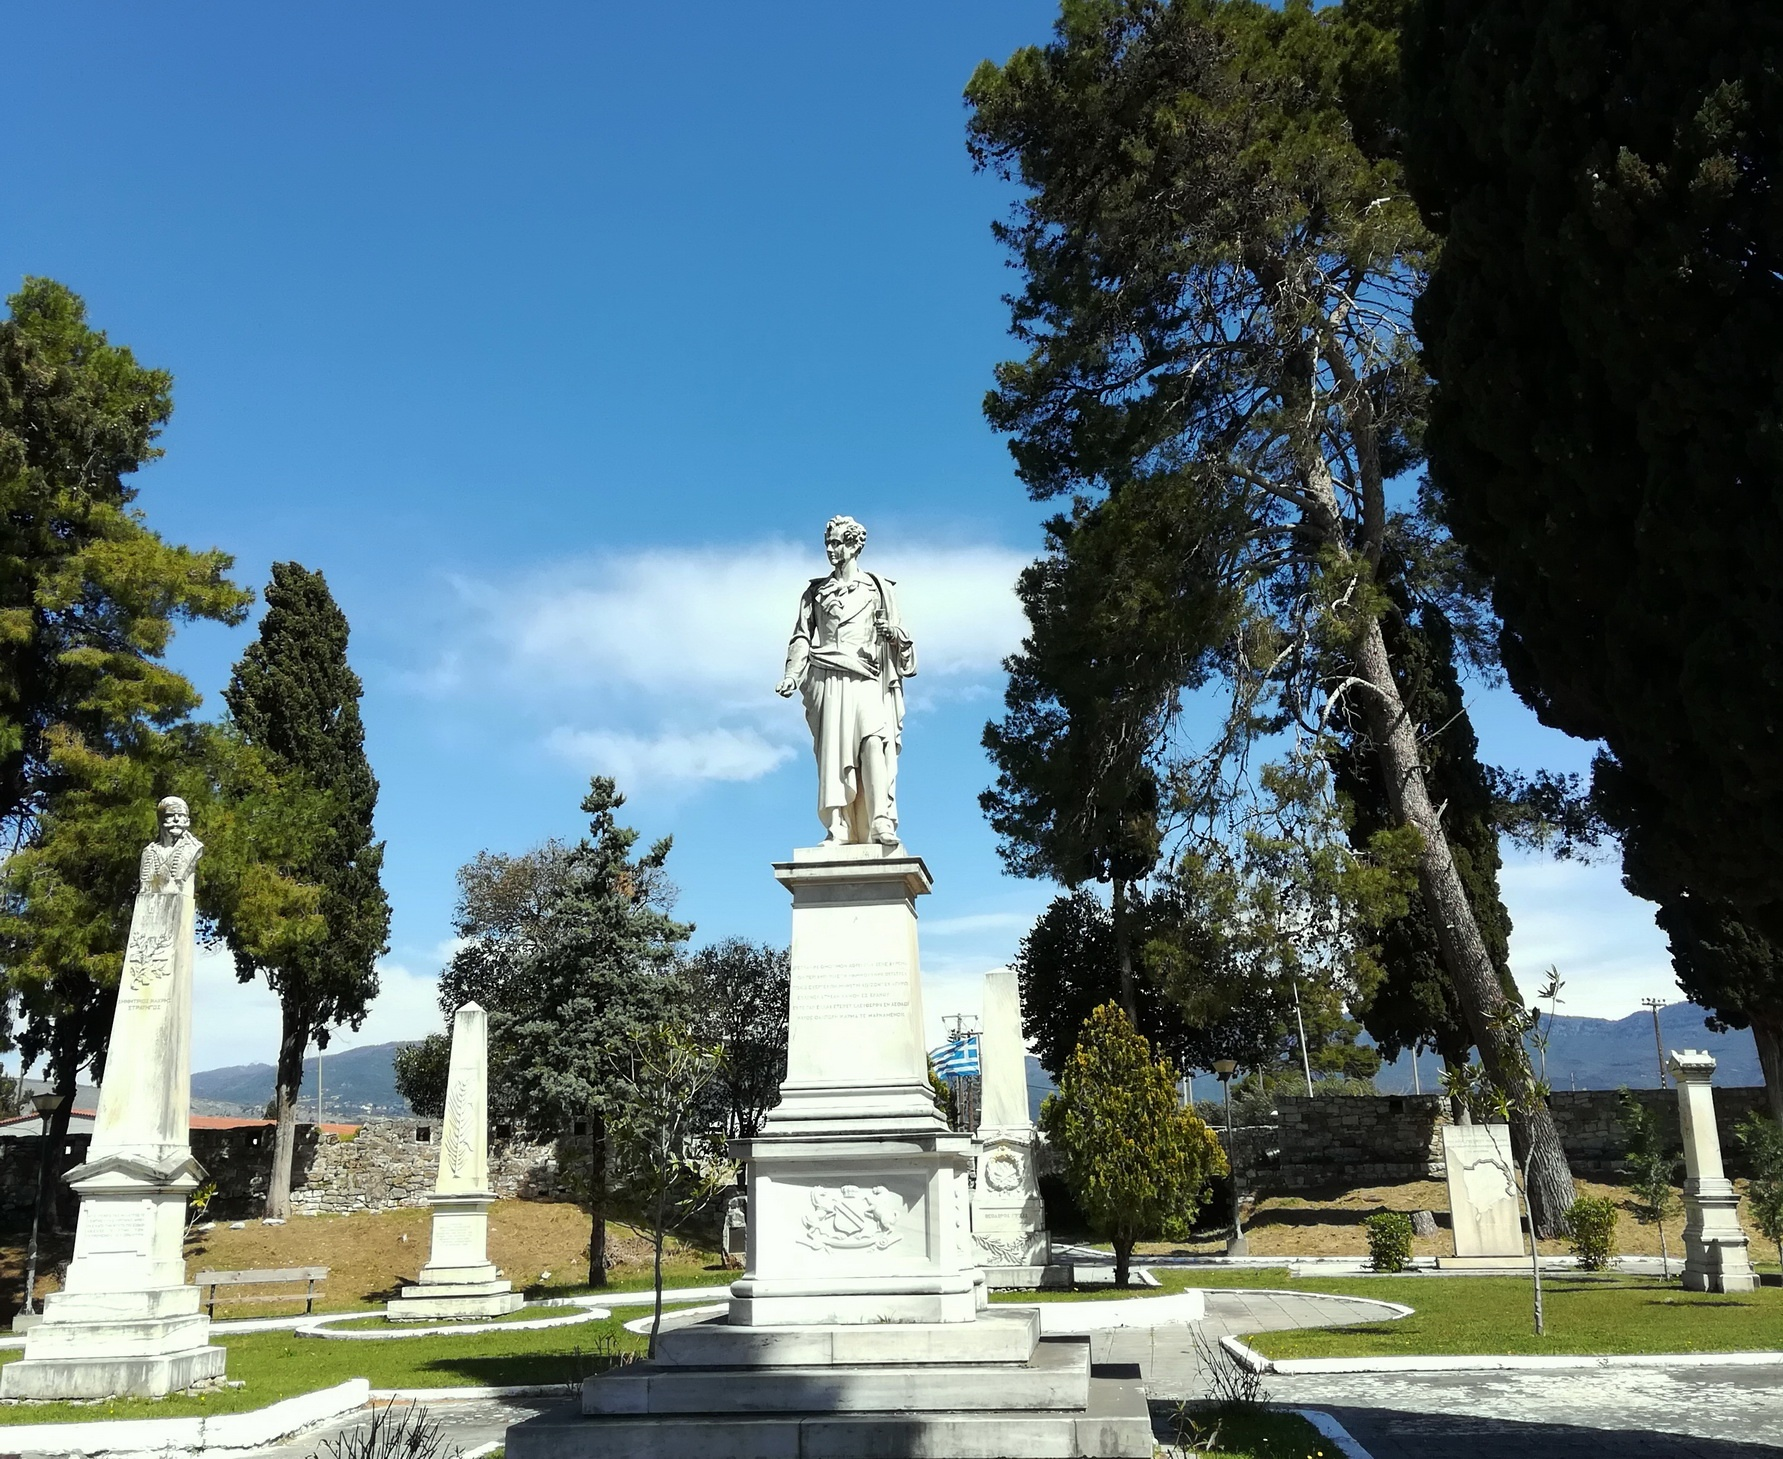 Heroes of the Greek War of Independence are honored in this garden